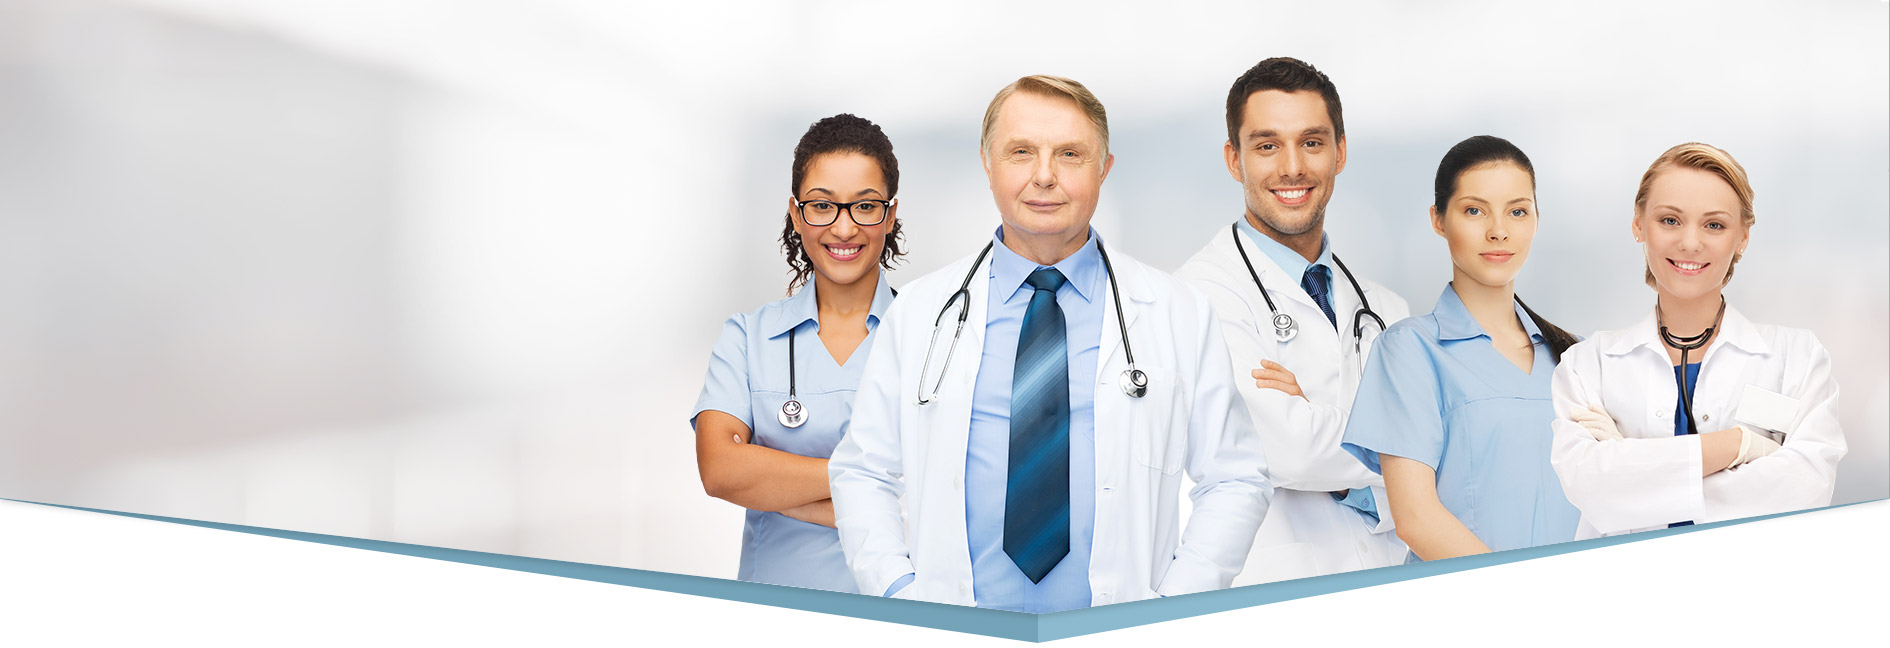 Midwest Orthopaedic Consultants doctors